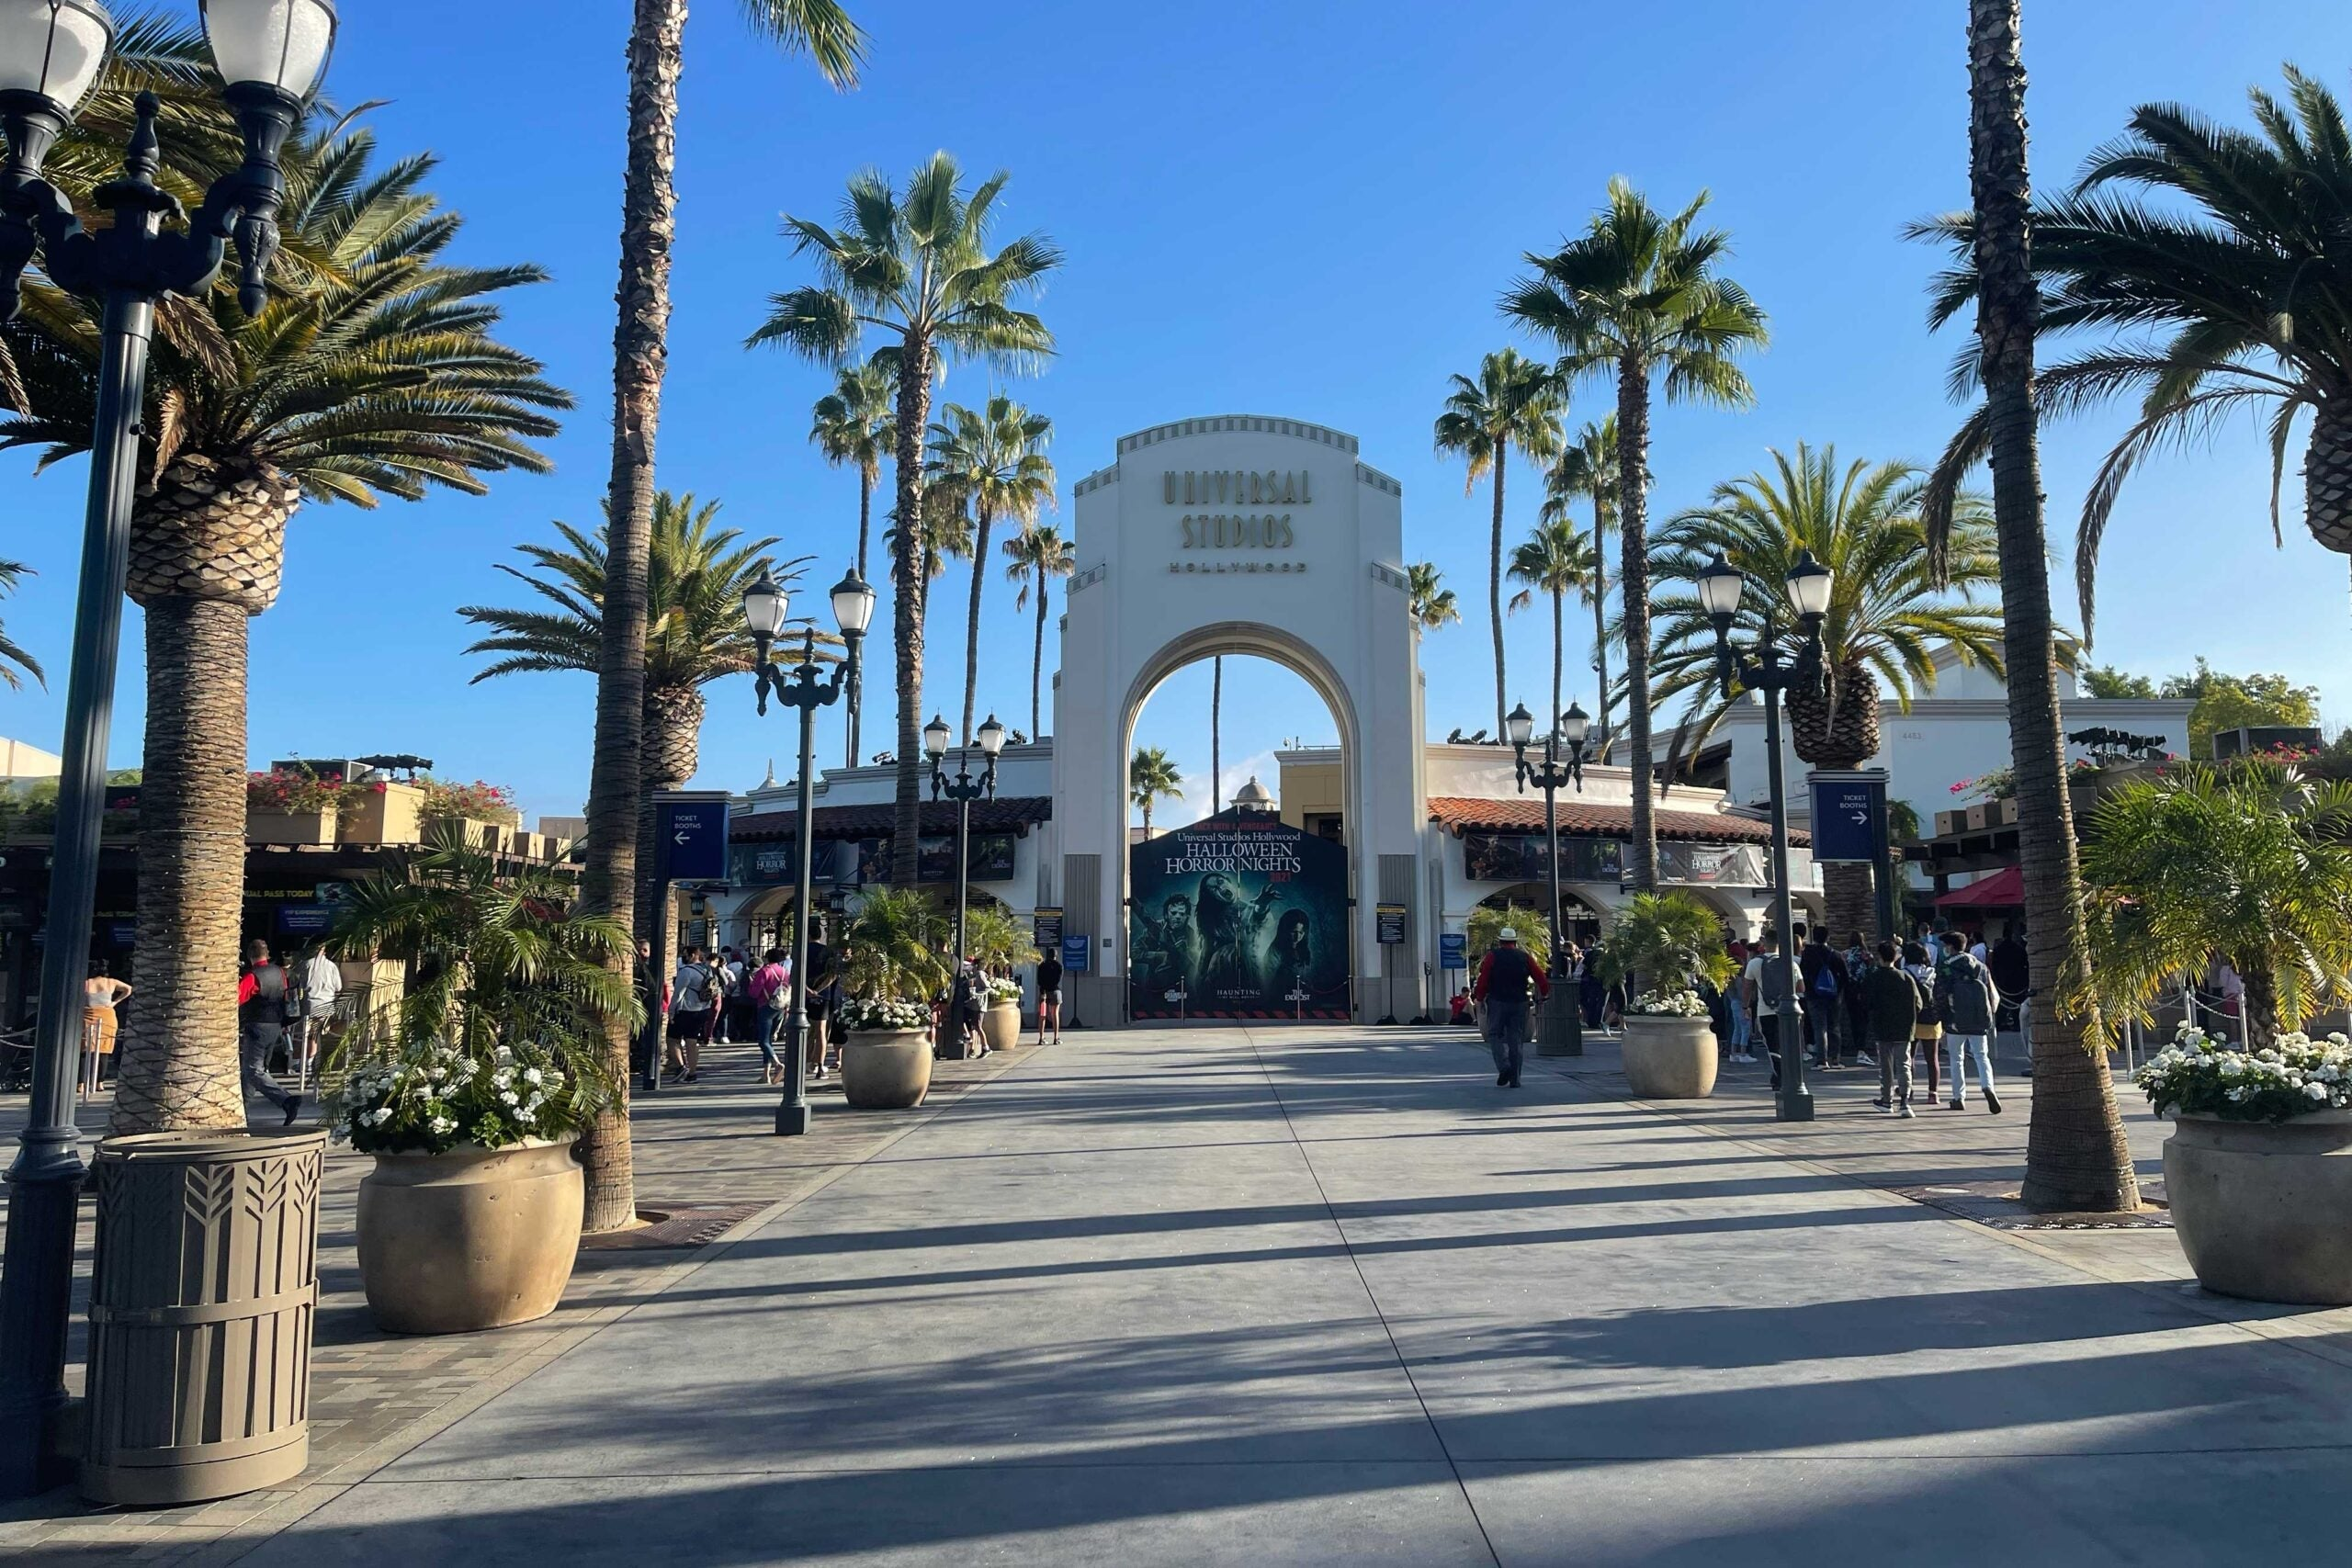 What it's like at Universal Studios Hollywood after new COVID-19 protocols - The Points Guy UK